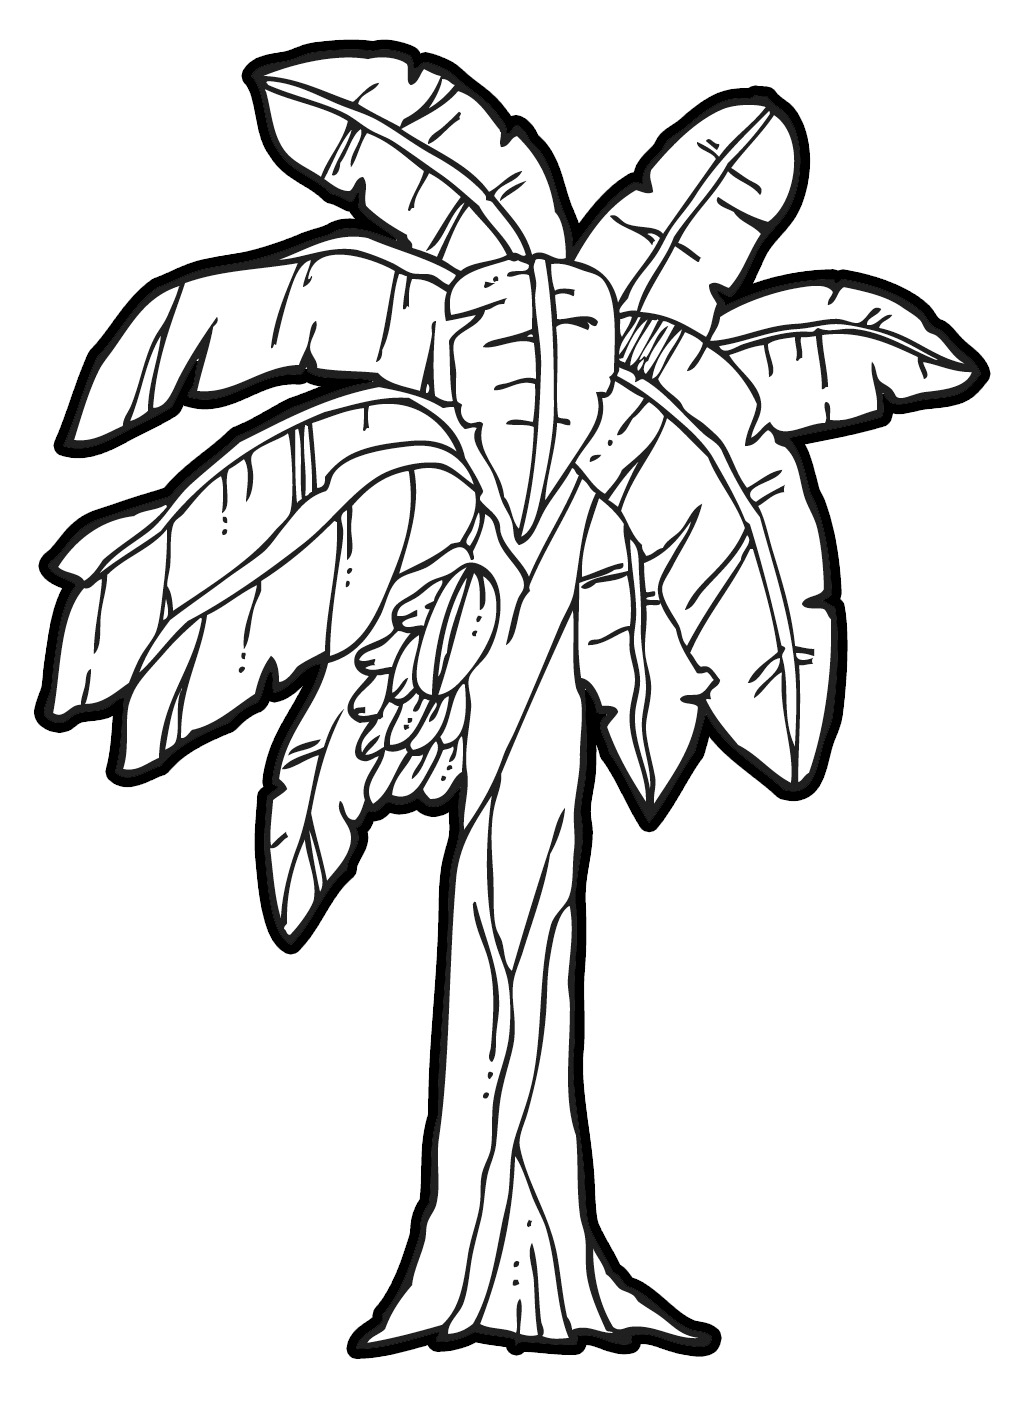 Free Banana Plant Cliparts, Download Free Clip Art, Free Clip Art on.